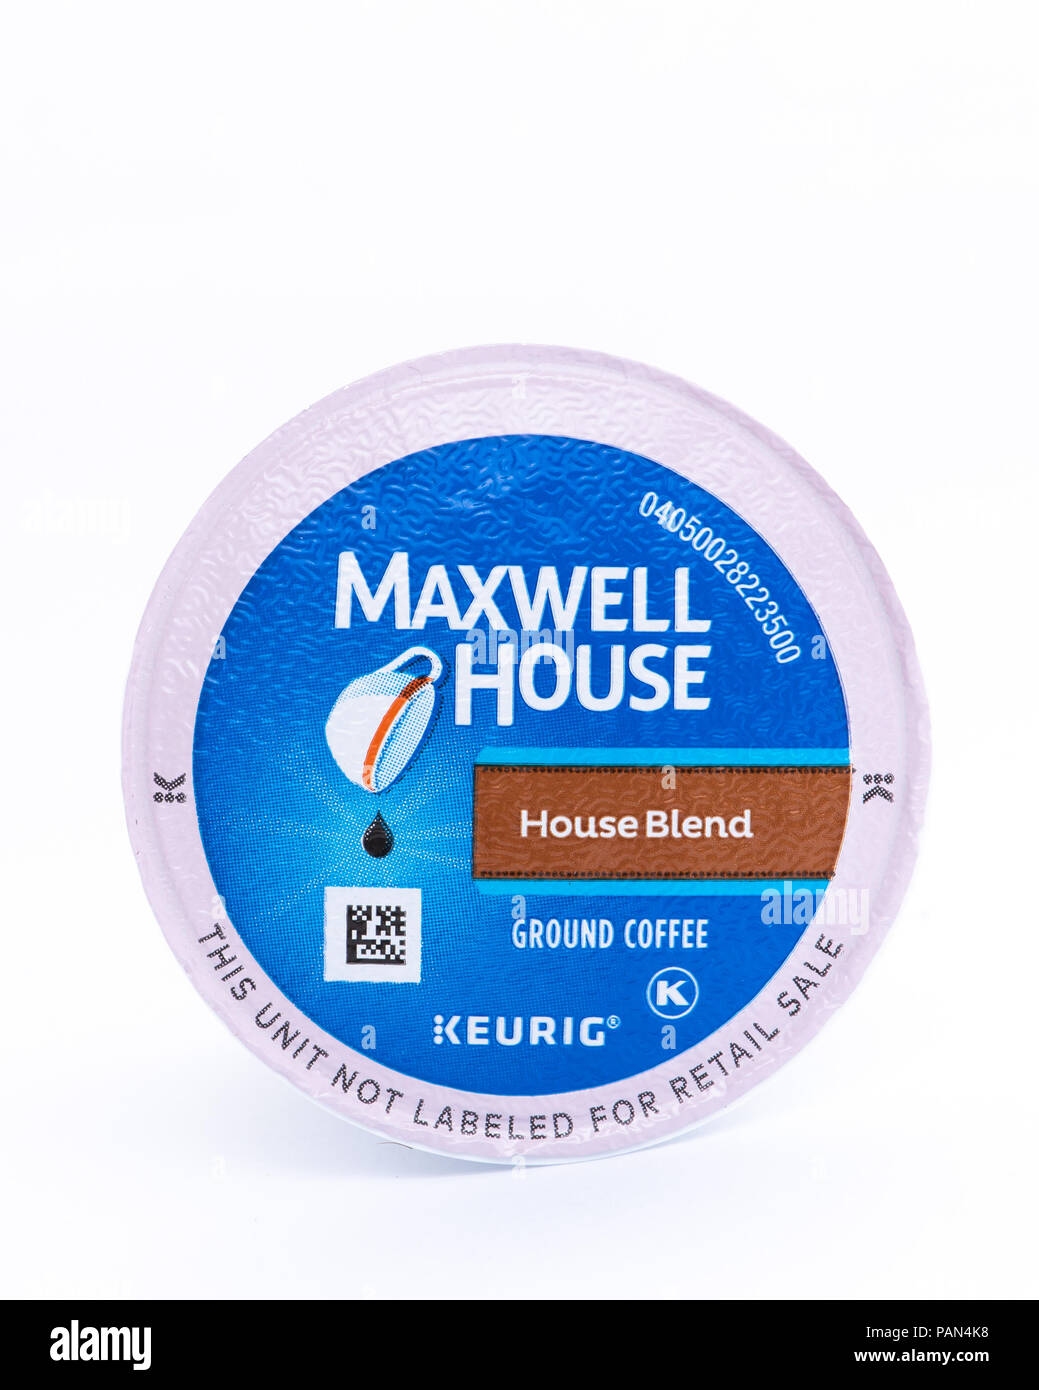 A single serving K-CUP pod of Maxwell House - House Blend Medium Roast Arabica coffee for use in Keurig K-CUP brewers. - Stock Image